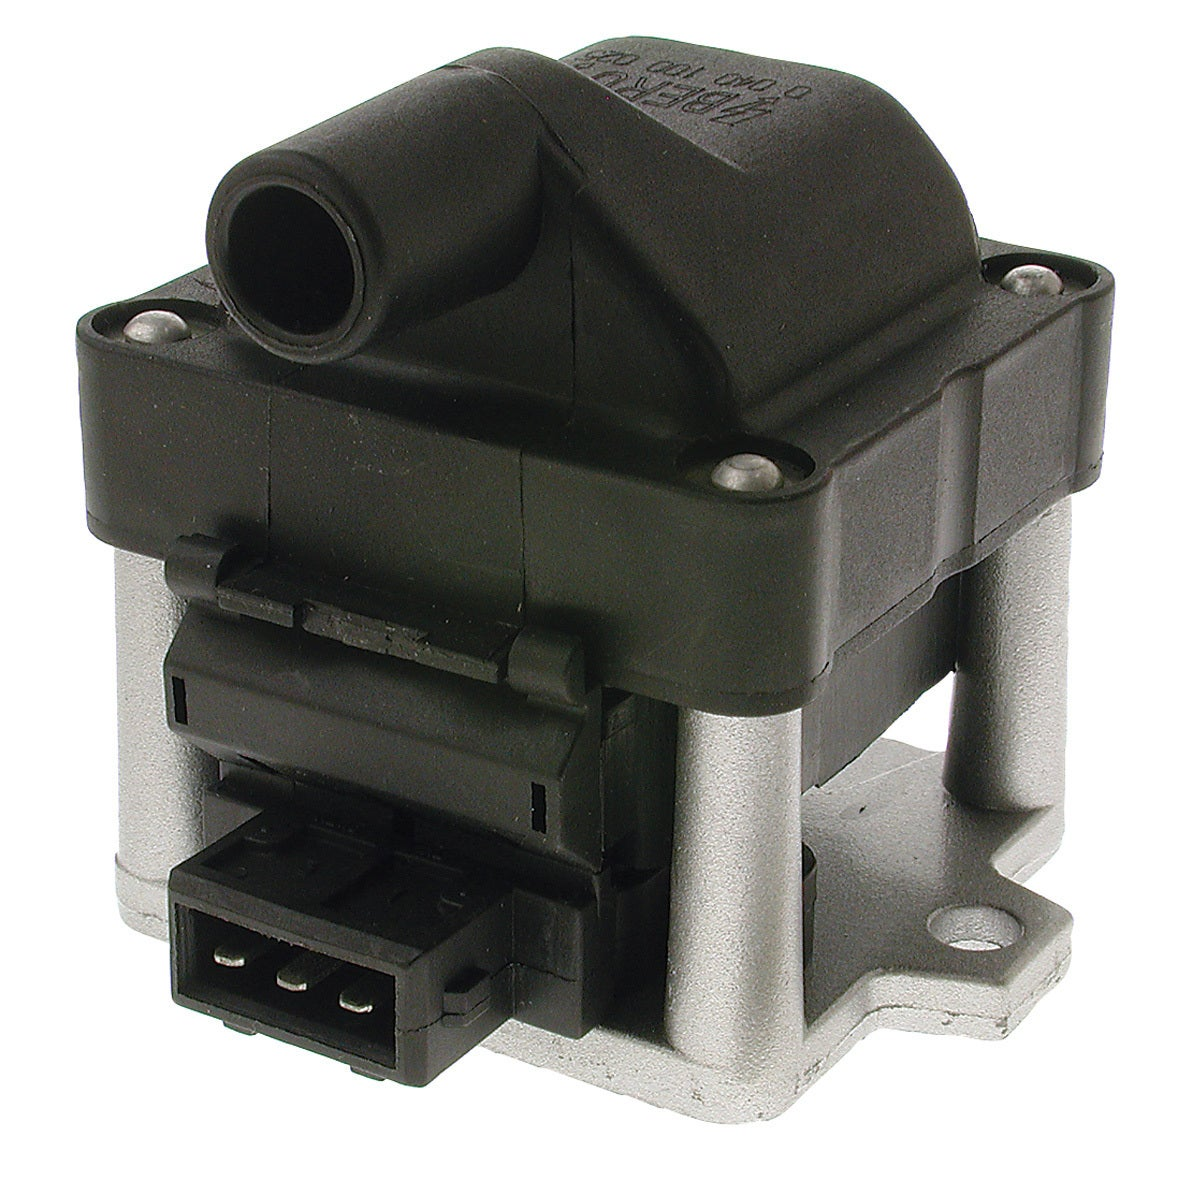 Ignition coil for Volkswagen Passat AGG 4-Cyl 2.0 7/95-3/97 IGC-105